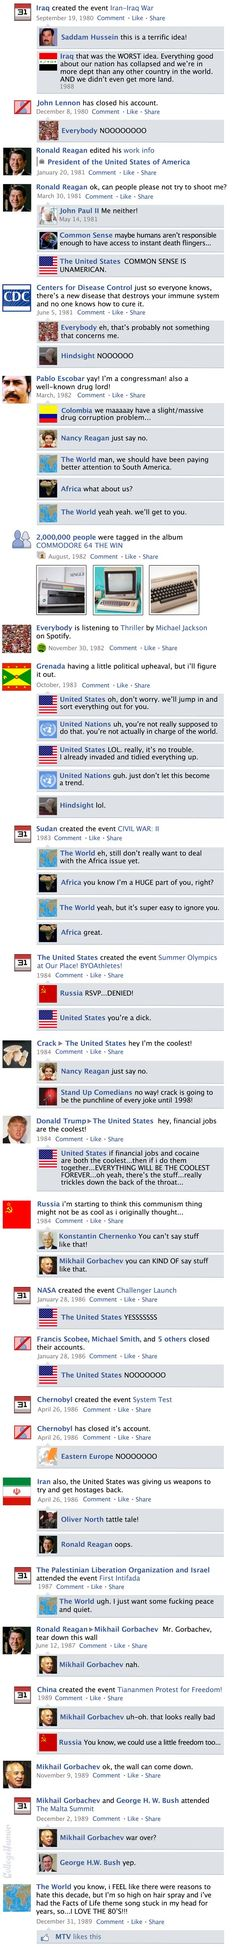 Facebook History of the World | CollegeHumor